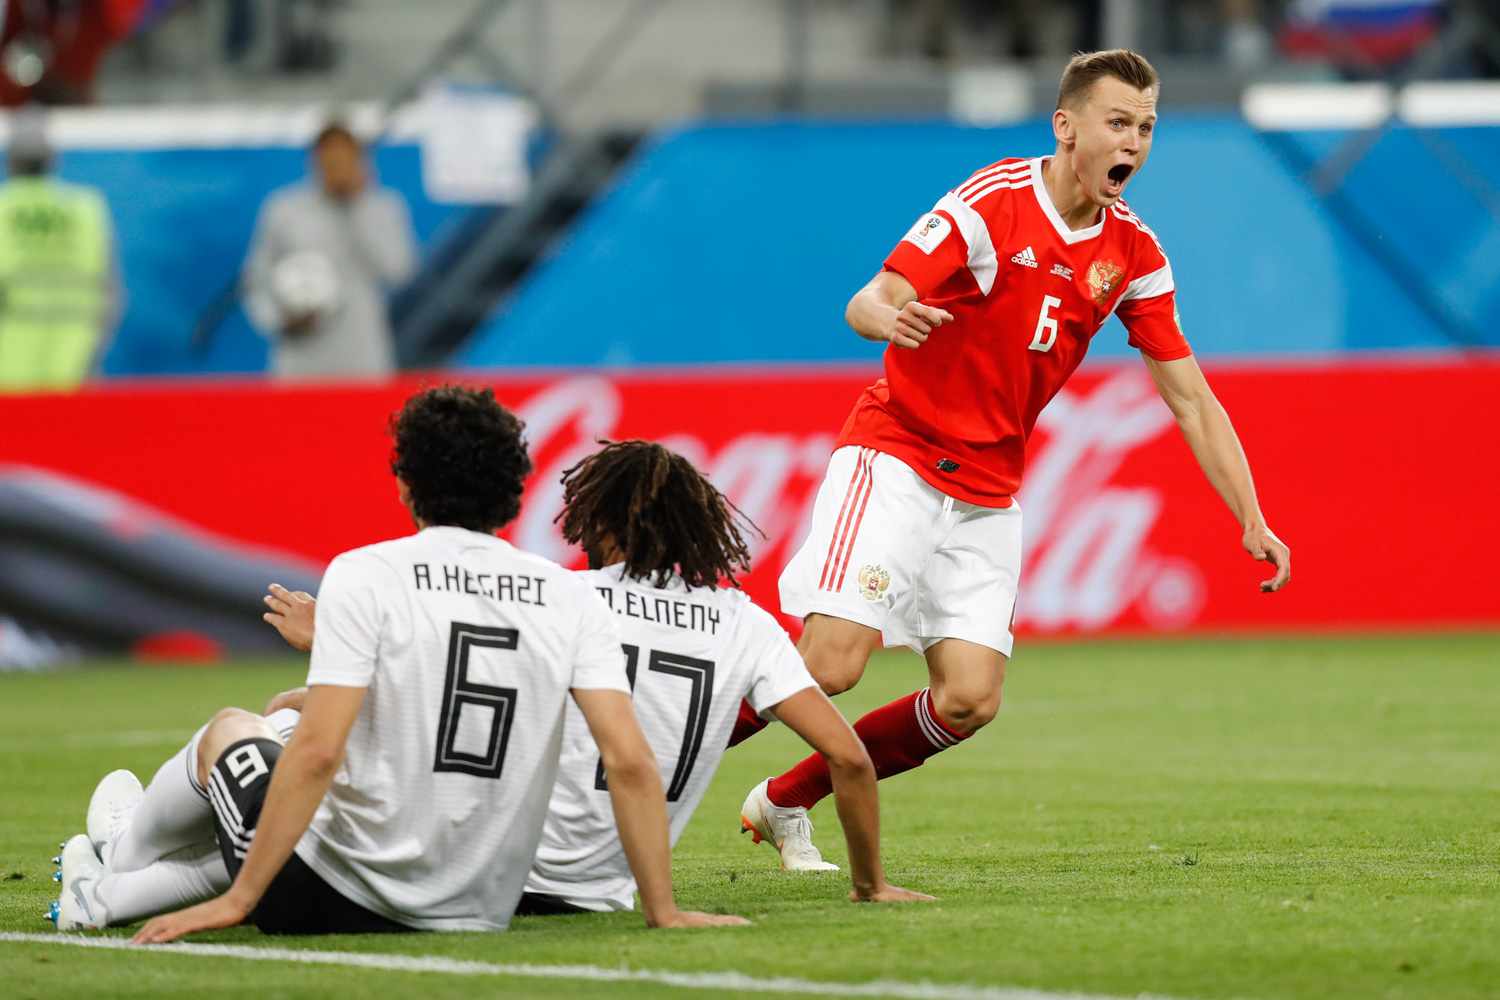 <div class='meta'><div class='origin-logo' data-origin='none'></div><span class='caption-text' data-credit='Efrem Lukatsky/AP'>Russia's Denis Cheryshev celebrates after scoring his team second goal during the group A match between Russia and Egypt at the 2018 soccer World Cup in the St. Petersburg stadium</span></div>